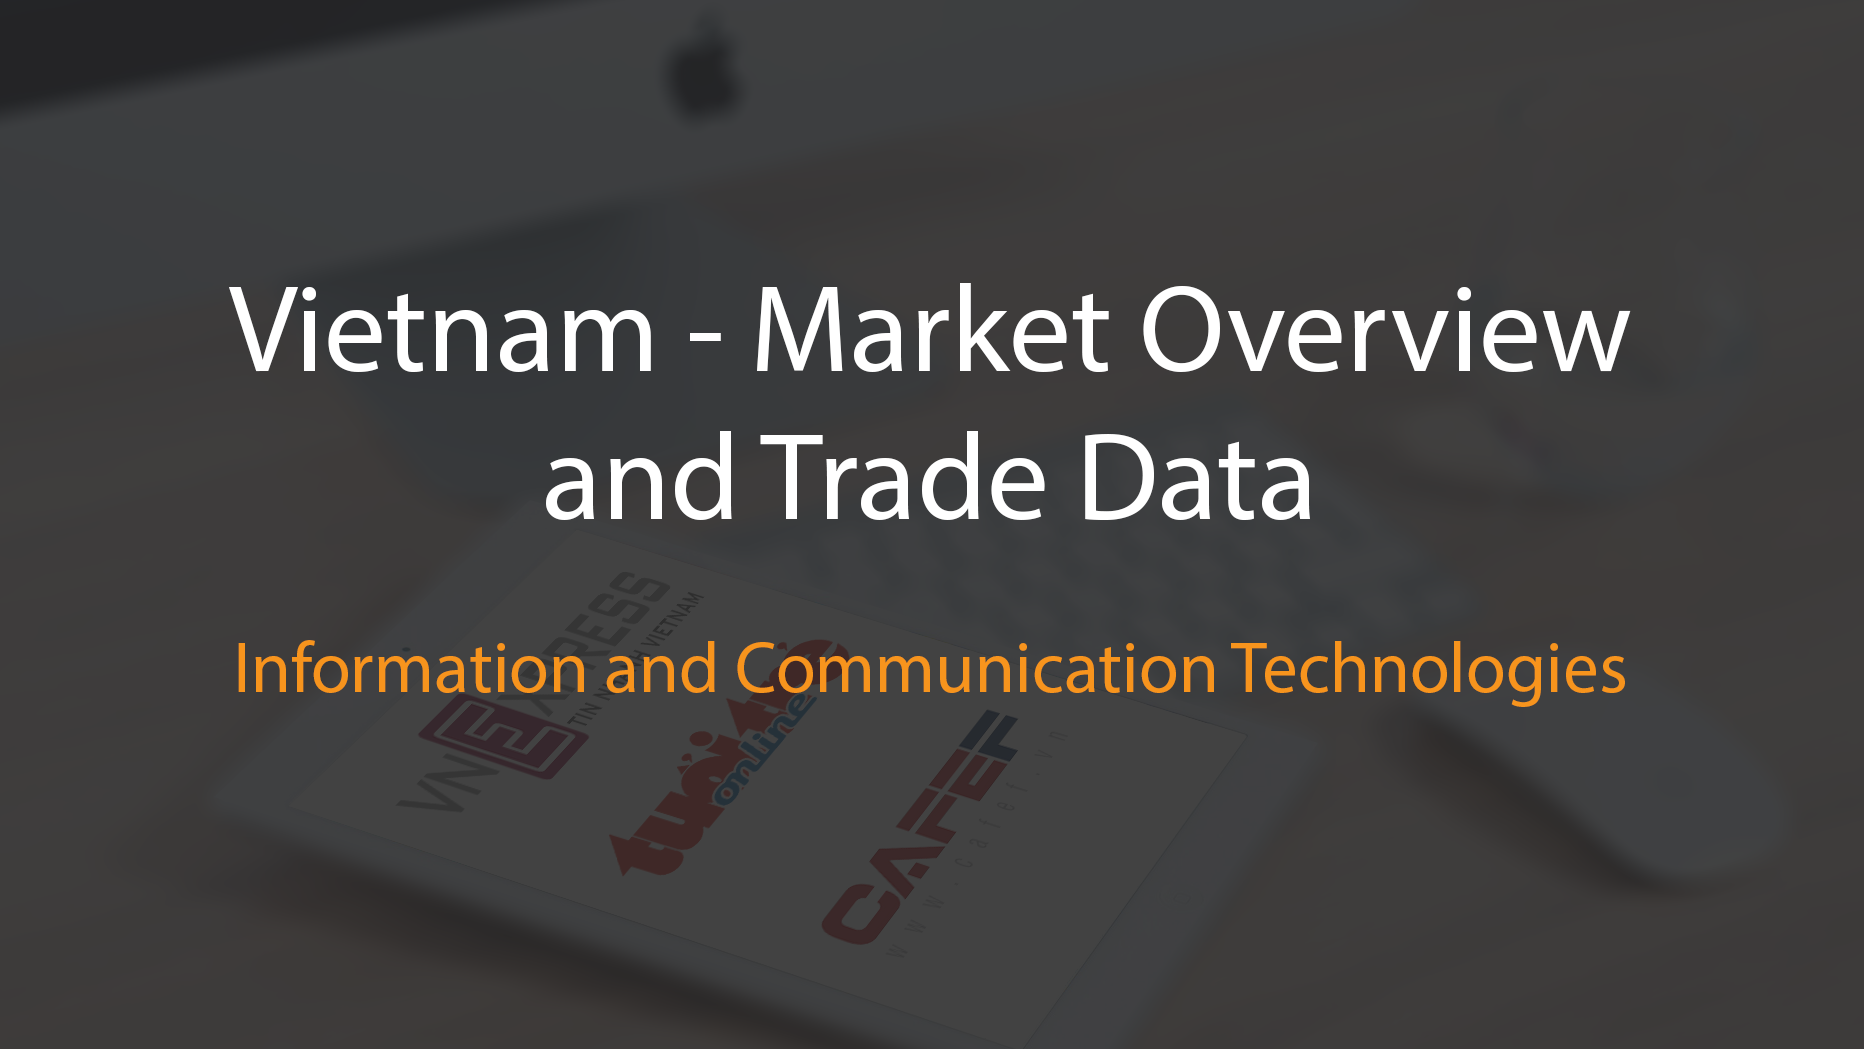 Vietnam internet communication technology market overview